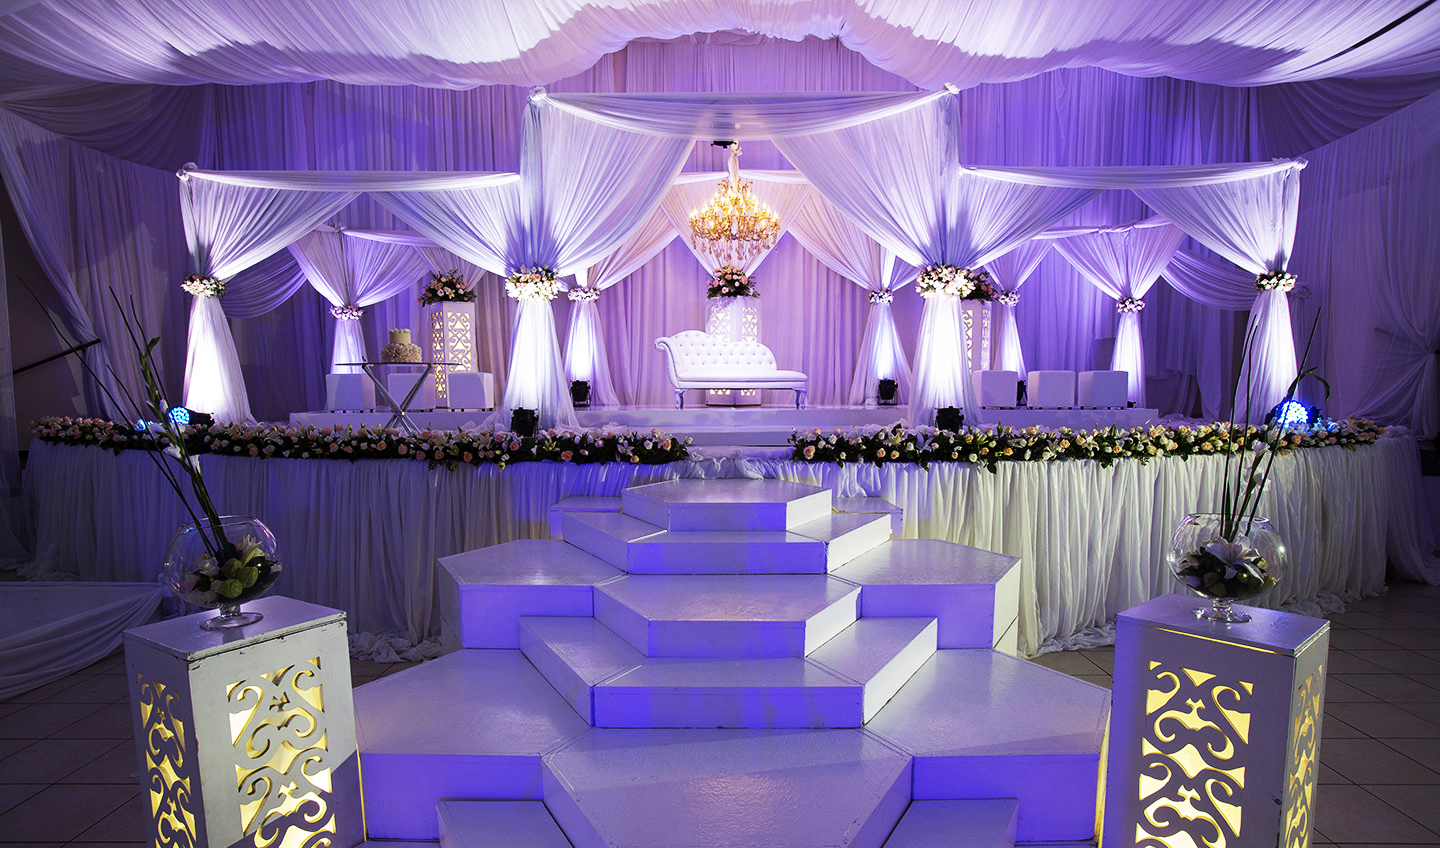 Designer weddings koogan pillay wedding decor durban for Wedding decoration design